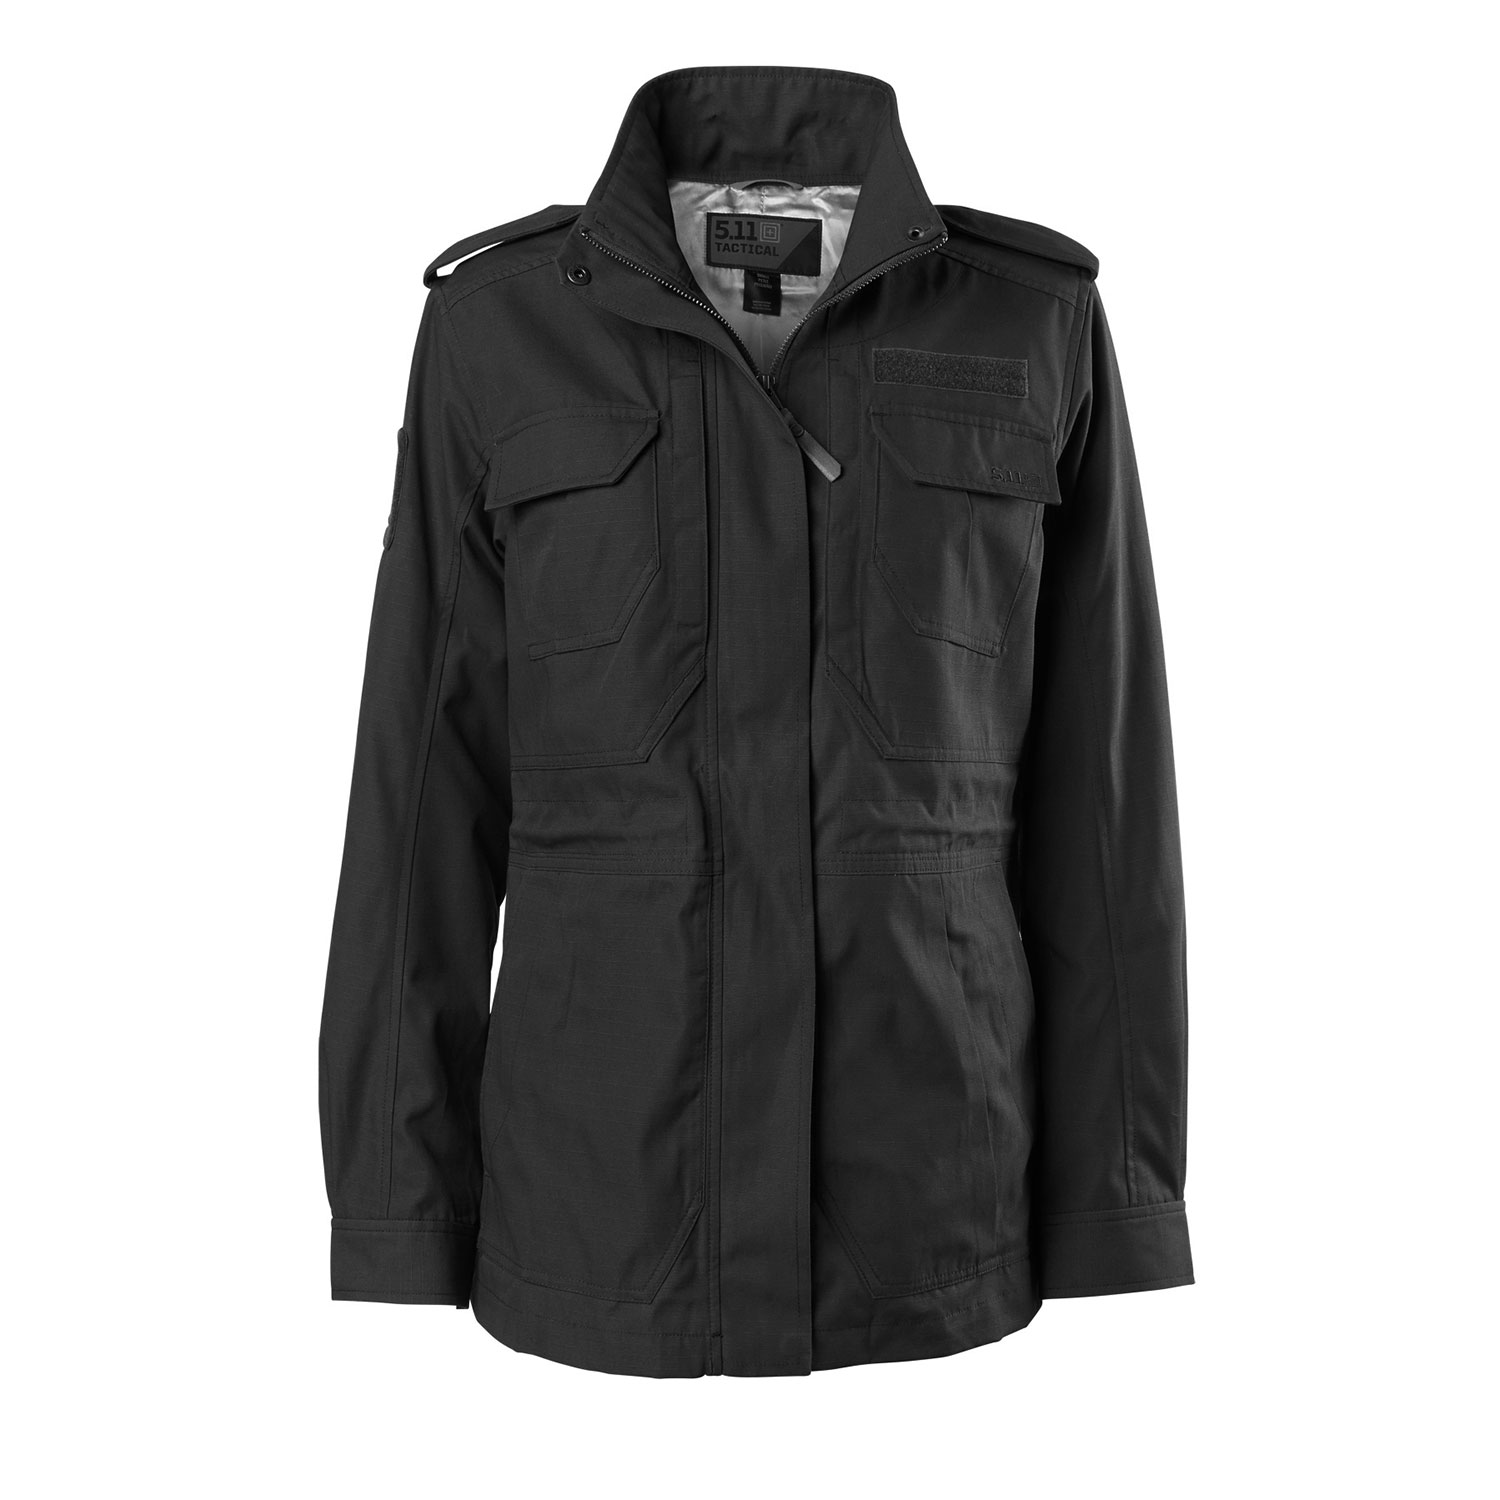 5.11 Women's Taclite M-65 Jacket